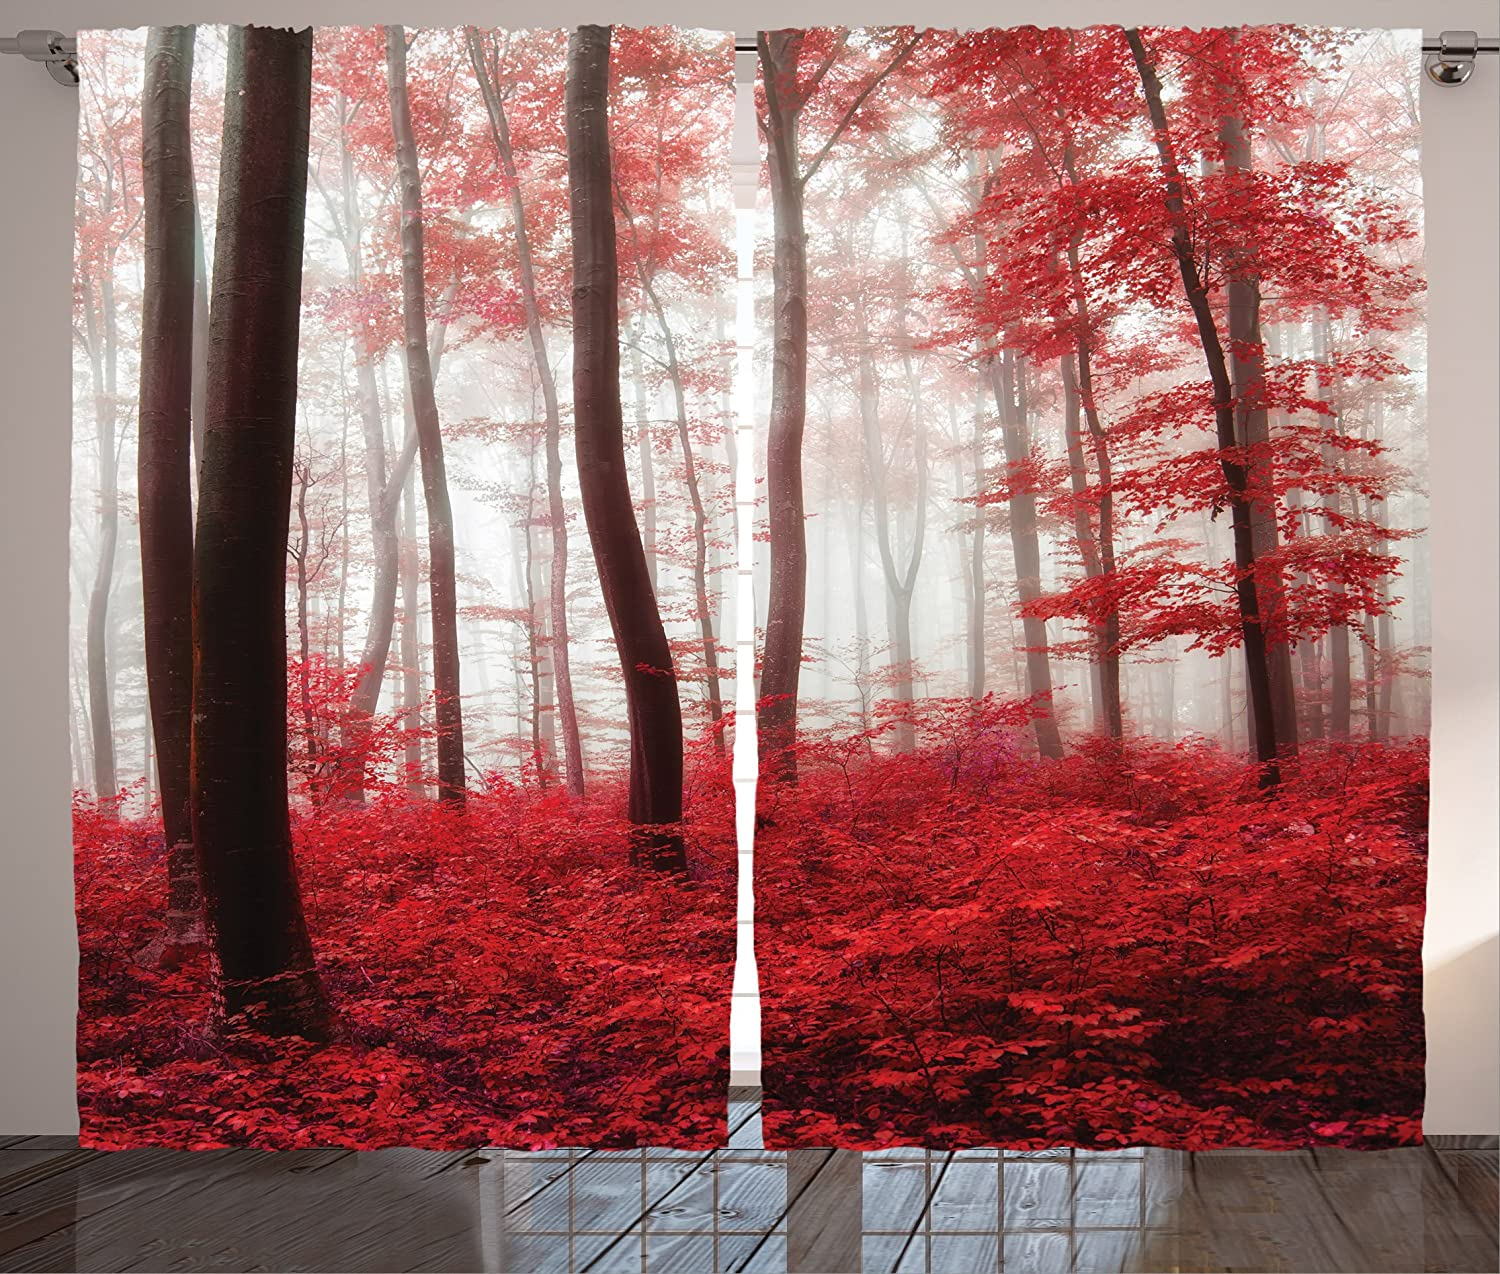 Ambesonne Lake House Decor Curtains, Saturated Picture of Dreamy Mystic Forest with Vivid Effects Mother Earth, Living Room Bedroom Window Drapes 2 Panel Set, 108W X 90L Inches, Red White